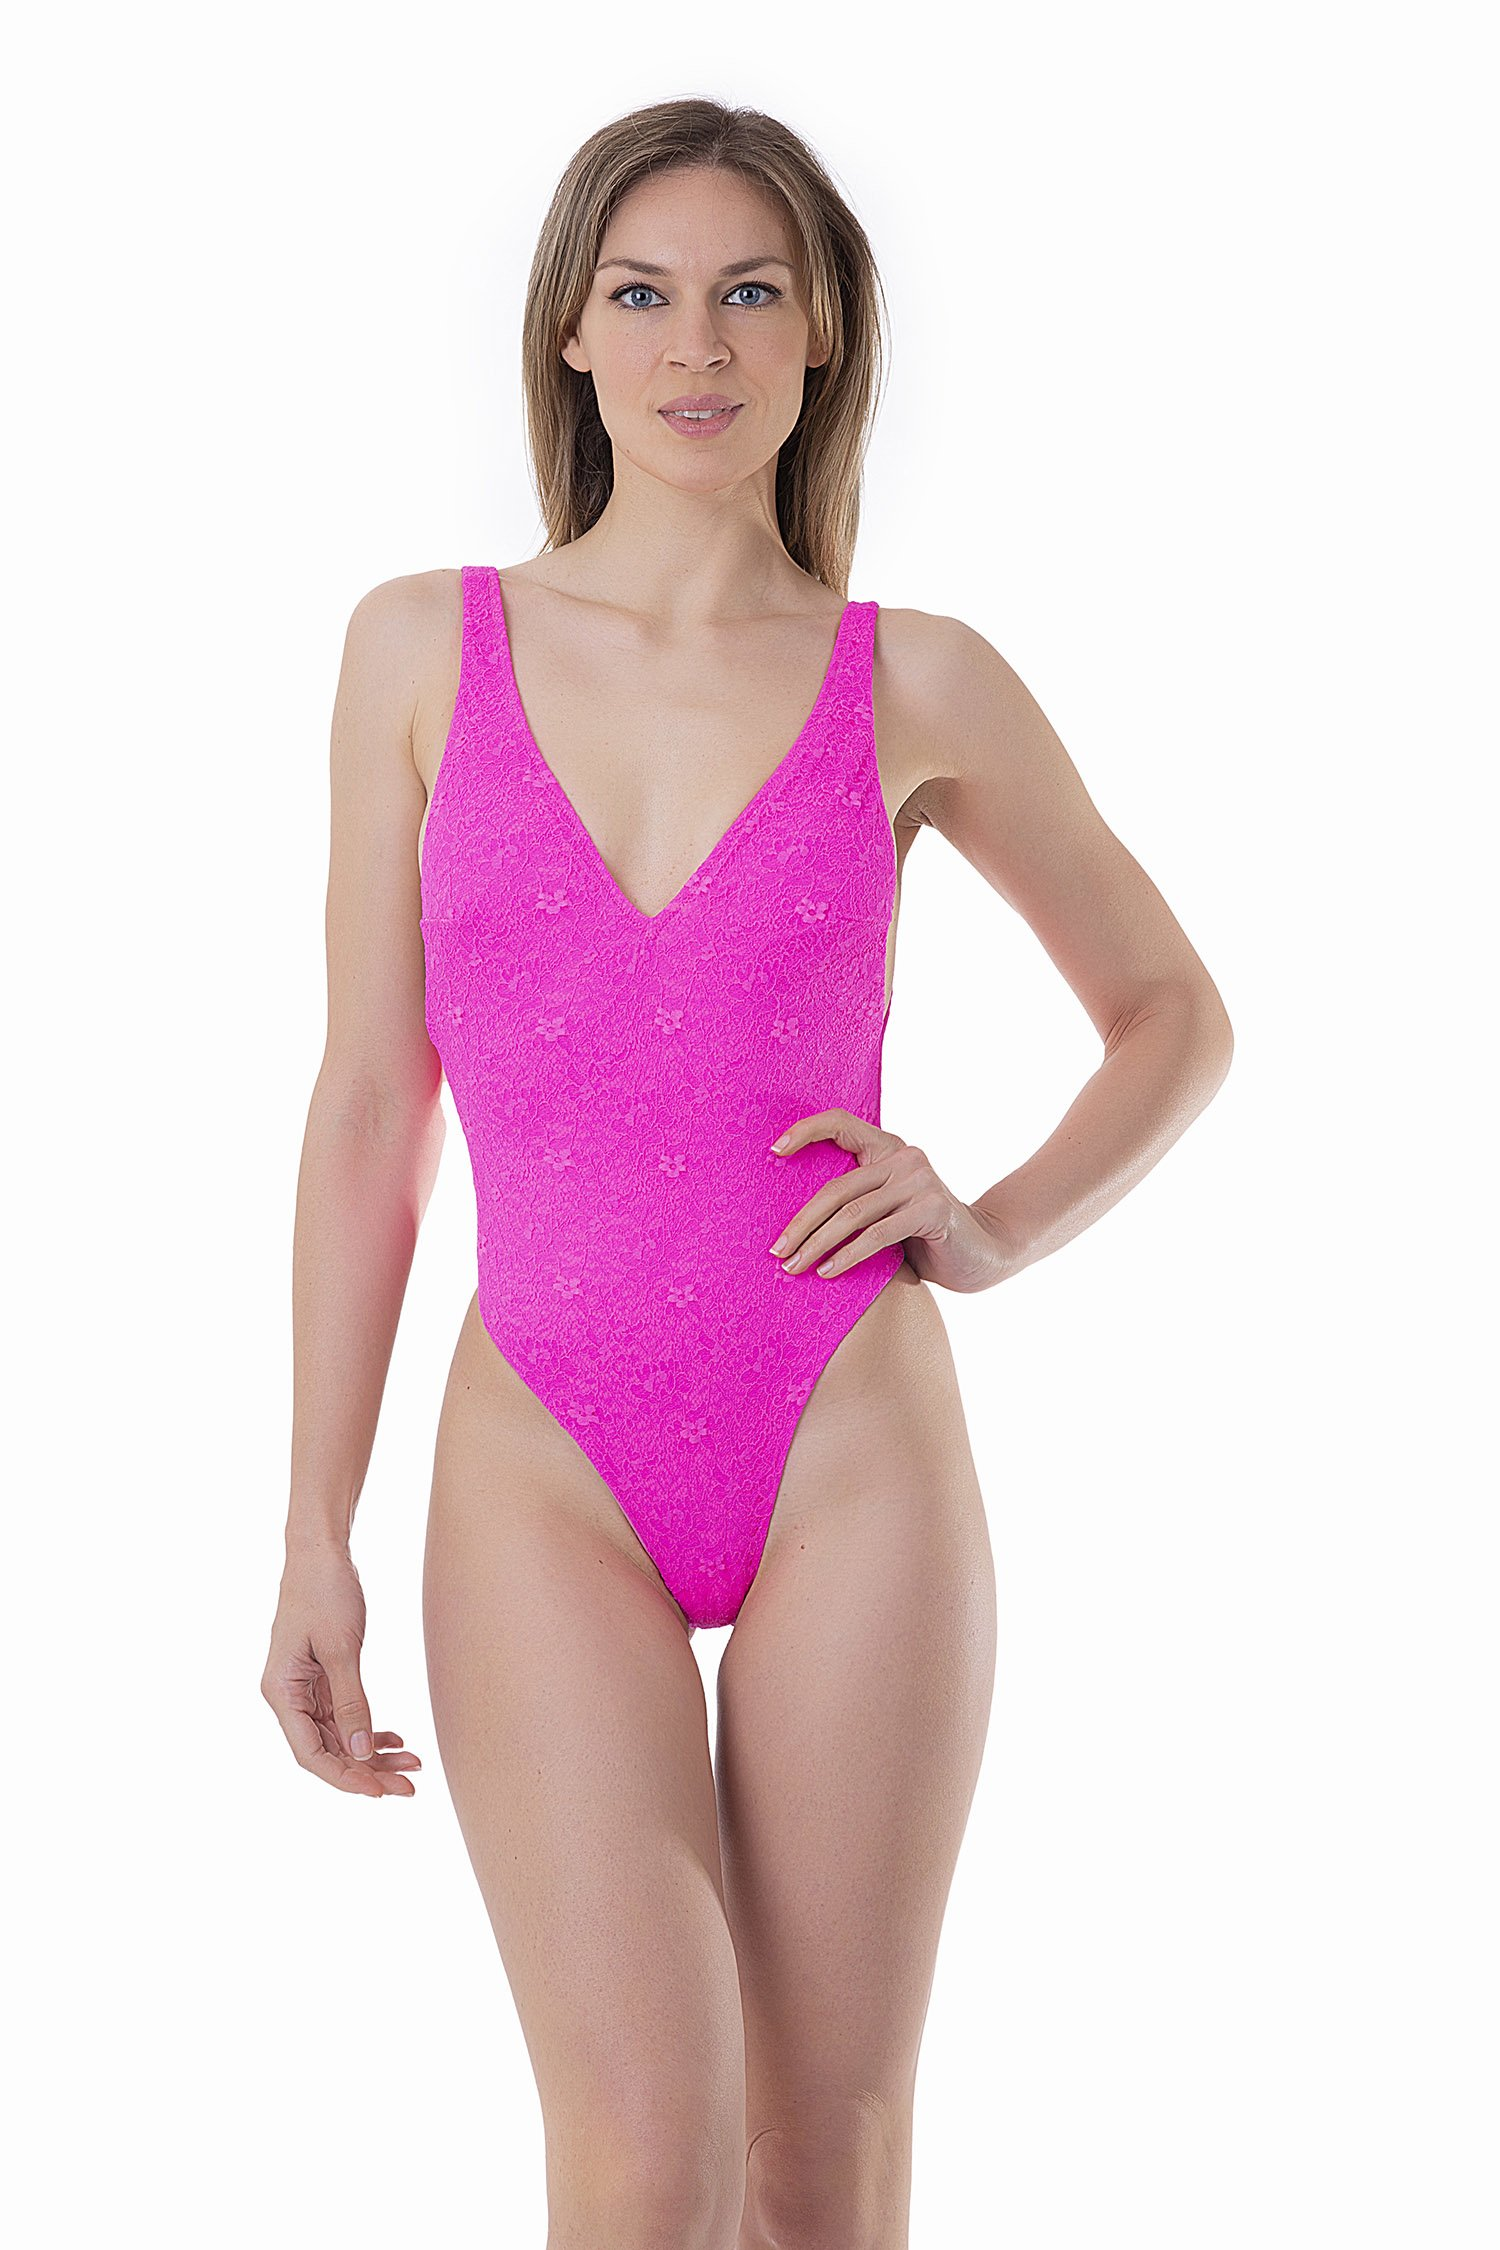 FLUORESCENT ONE-PIECE WITH LACE APPLICATION - Pizzo Rosa Fluo